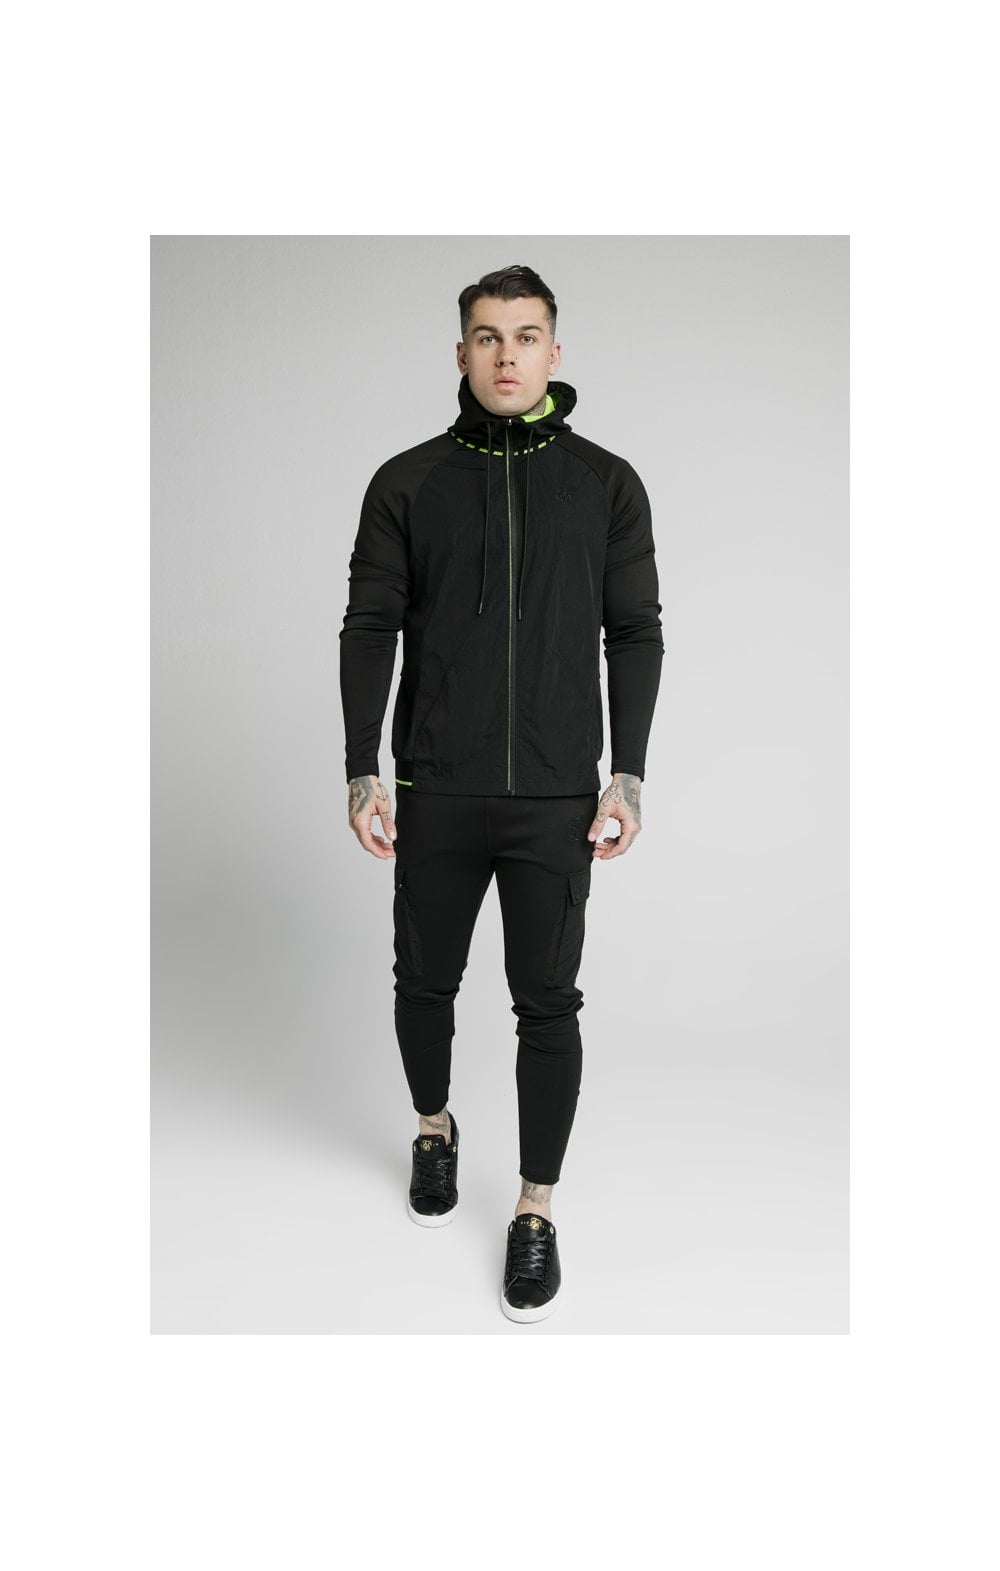 SikSilk Adapt Crushed Nylon Zip Through – Black (2)